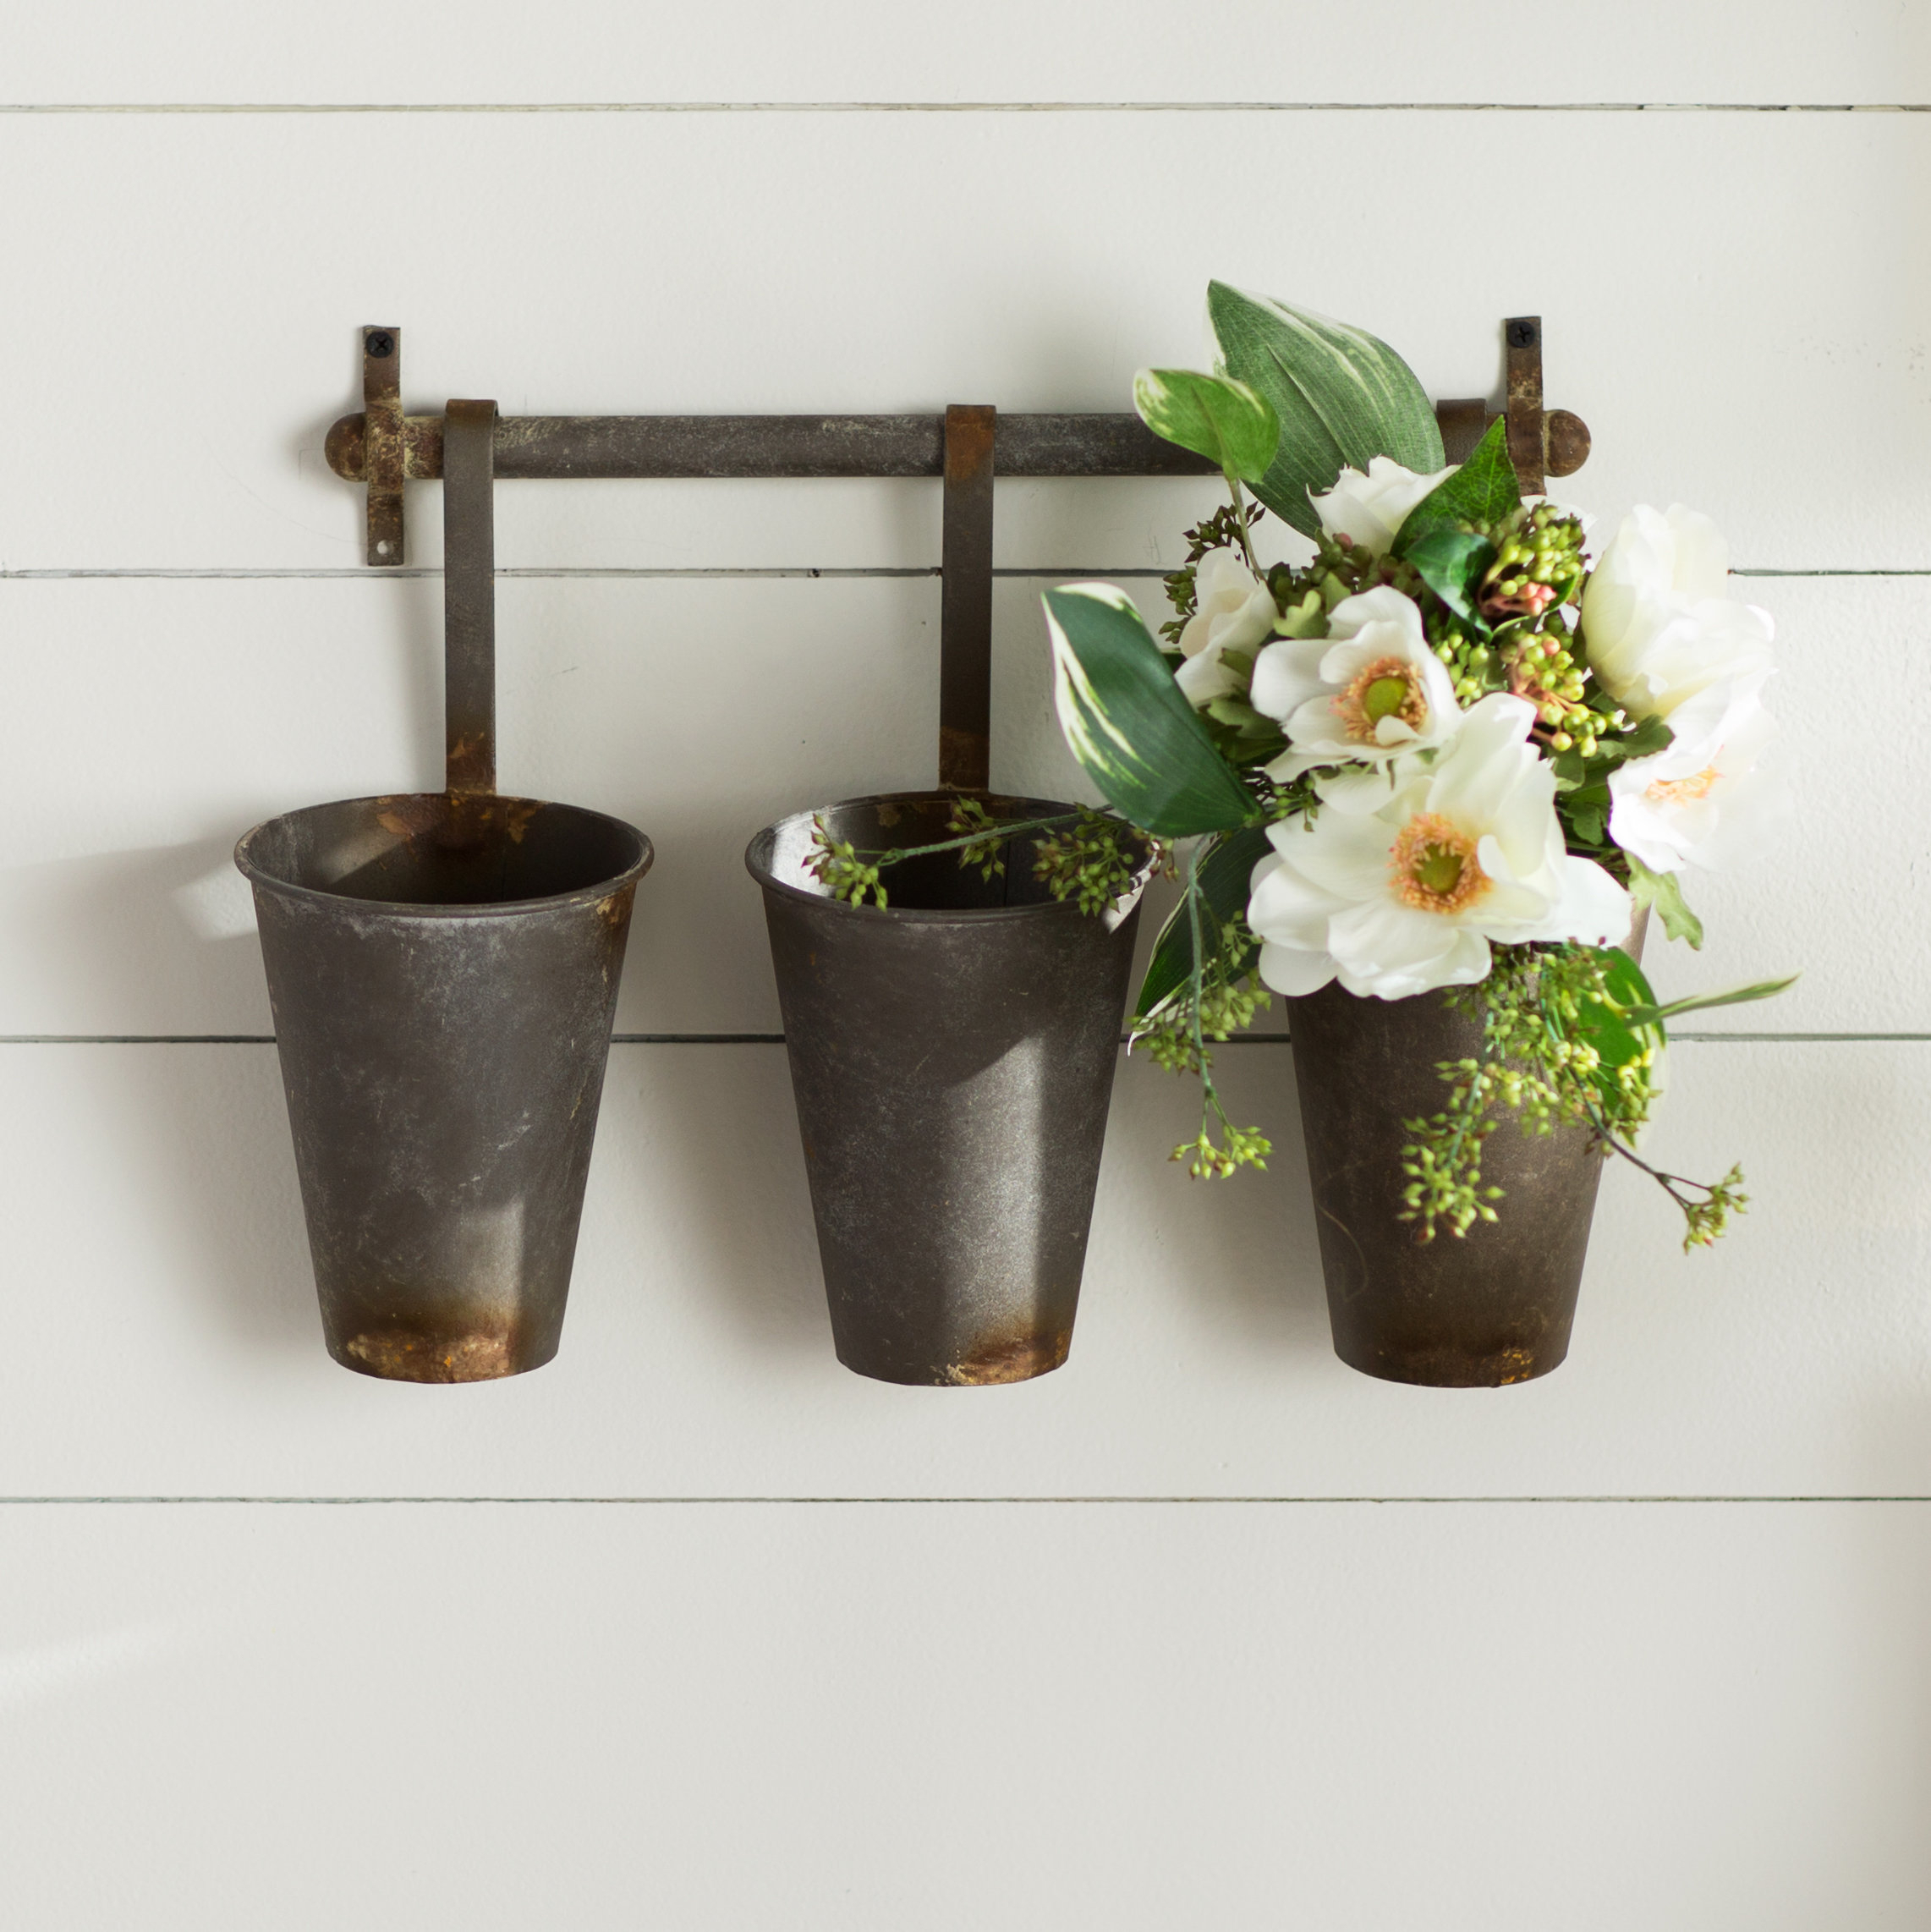 Laurel Foundry Modern Farmhouse Farm Metal Wall Rack And 3 Tin Pot Regarding Most Recently Released 3 Piece Wash, Brush, Comb Wall Decor Sets (Set Of 3) (View 11 of 20)